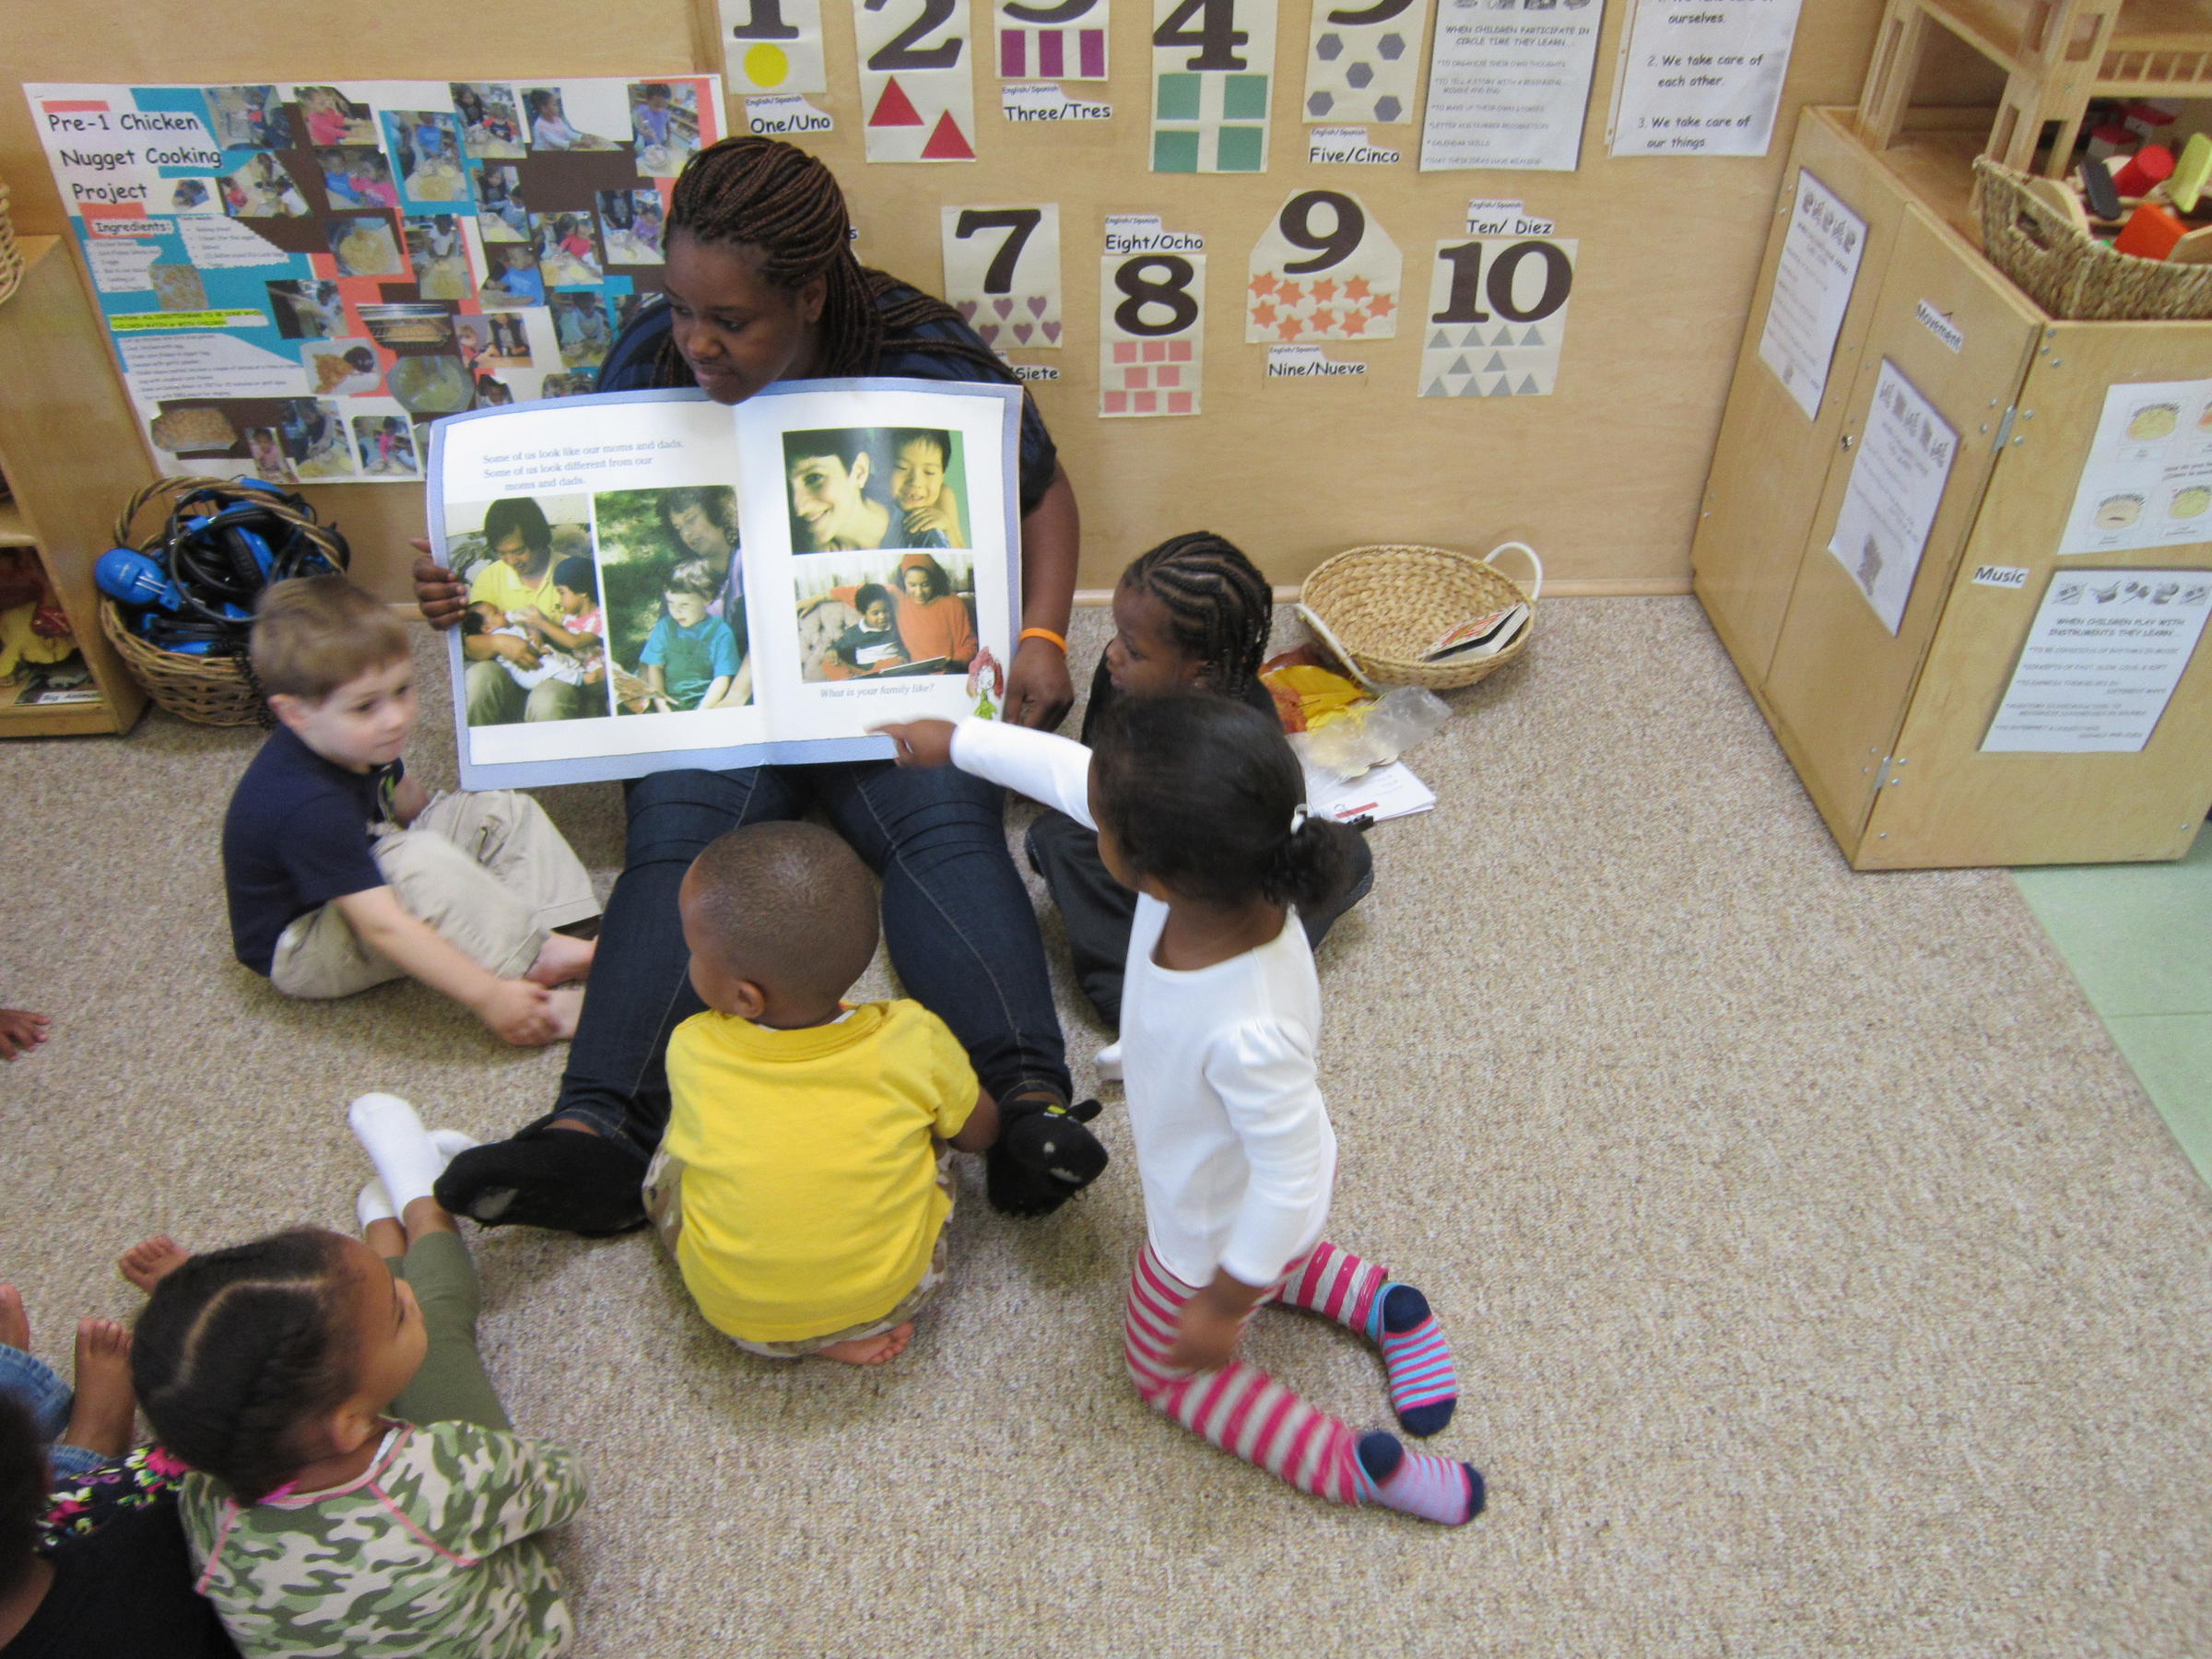 This Is Our Moment Early Learning Advocates Hoping For